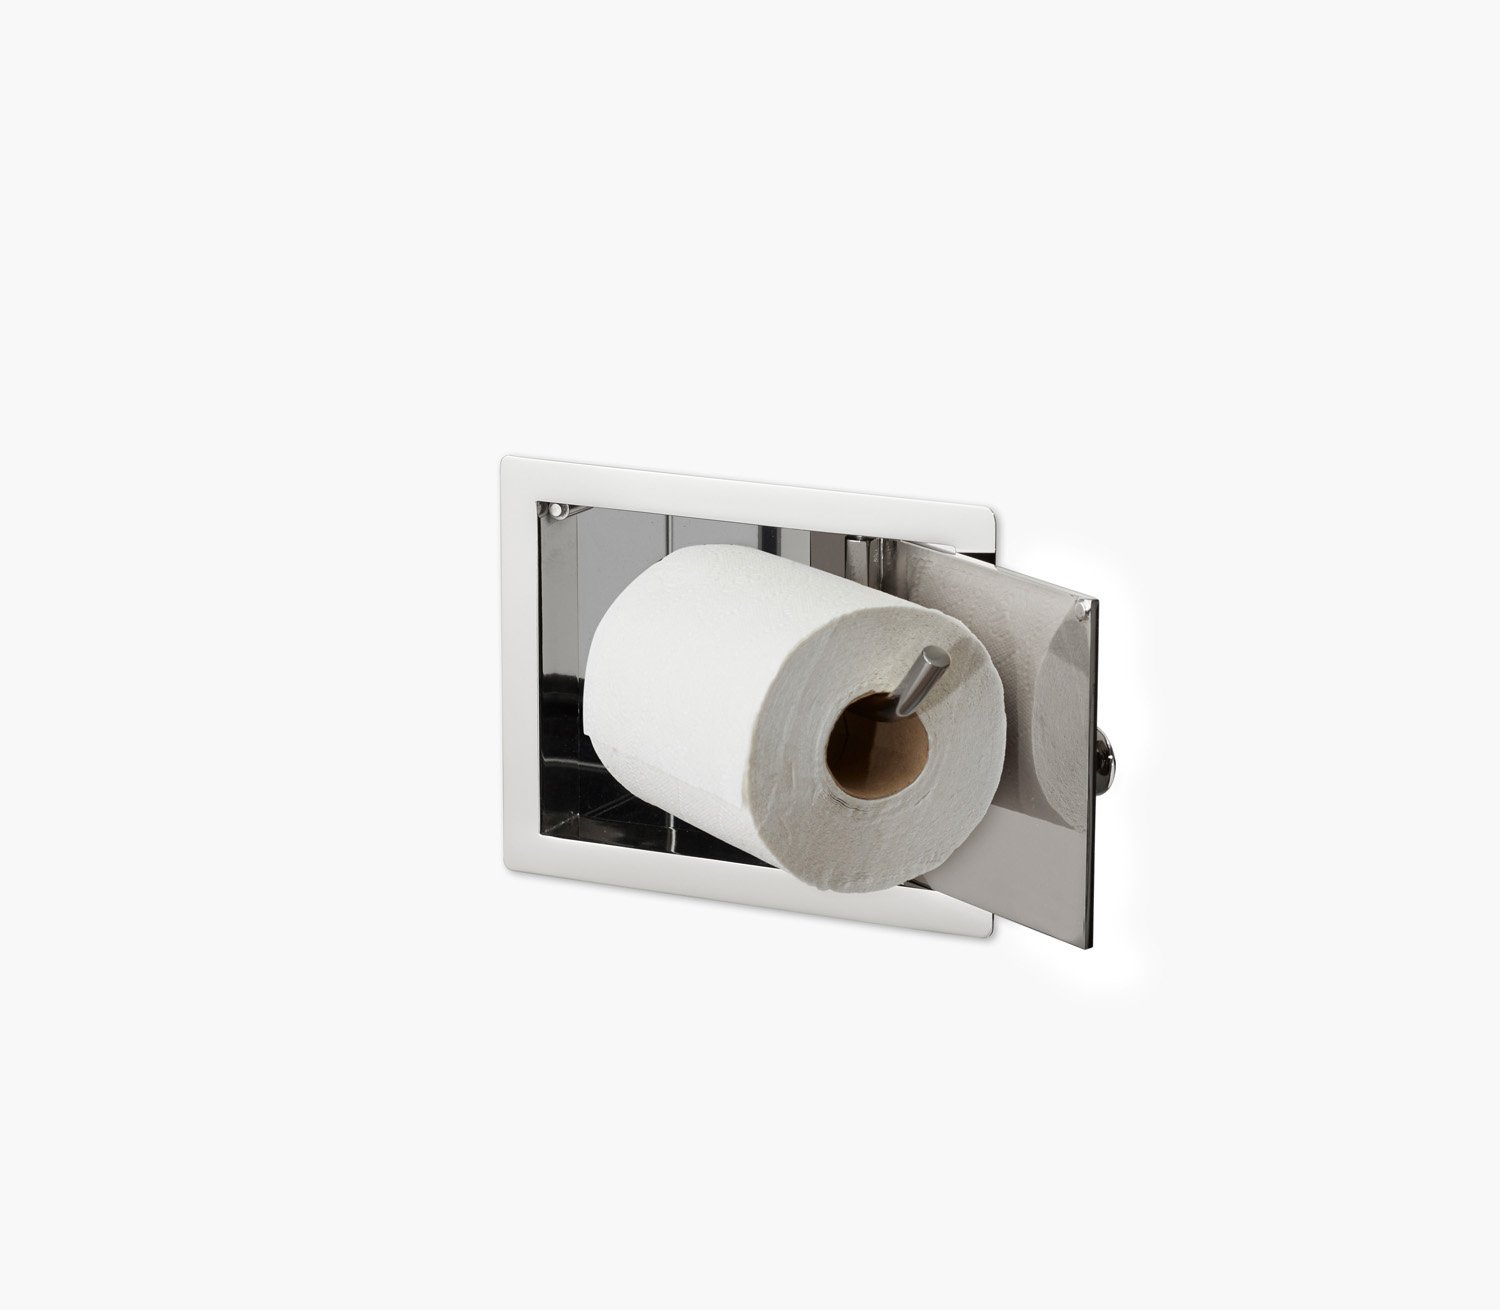 Wall Recessed Toilet Paper Holder II Product Image 2